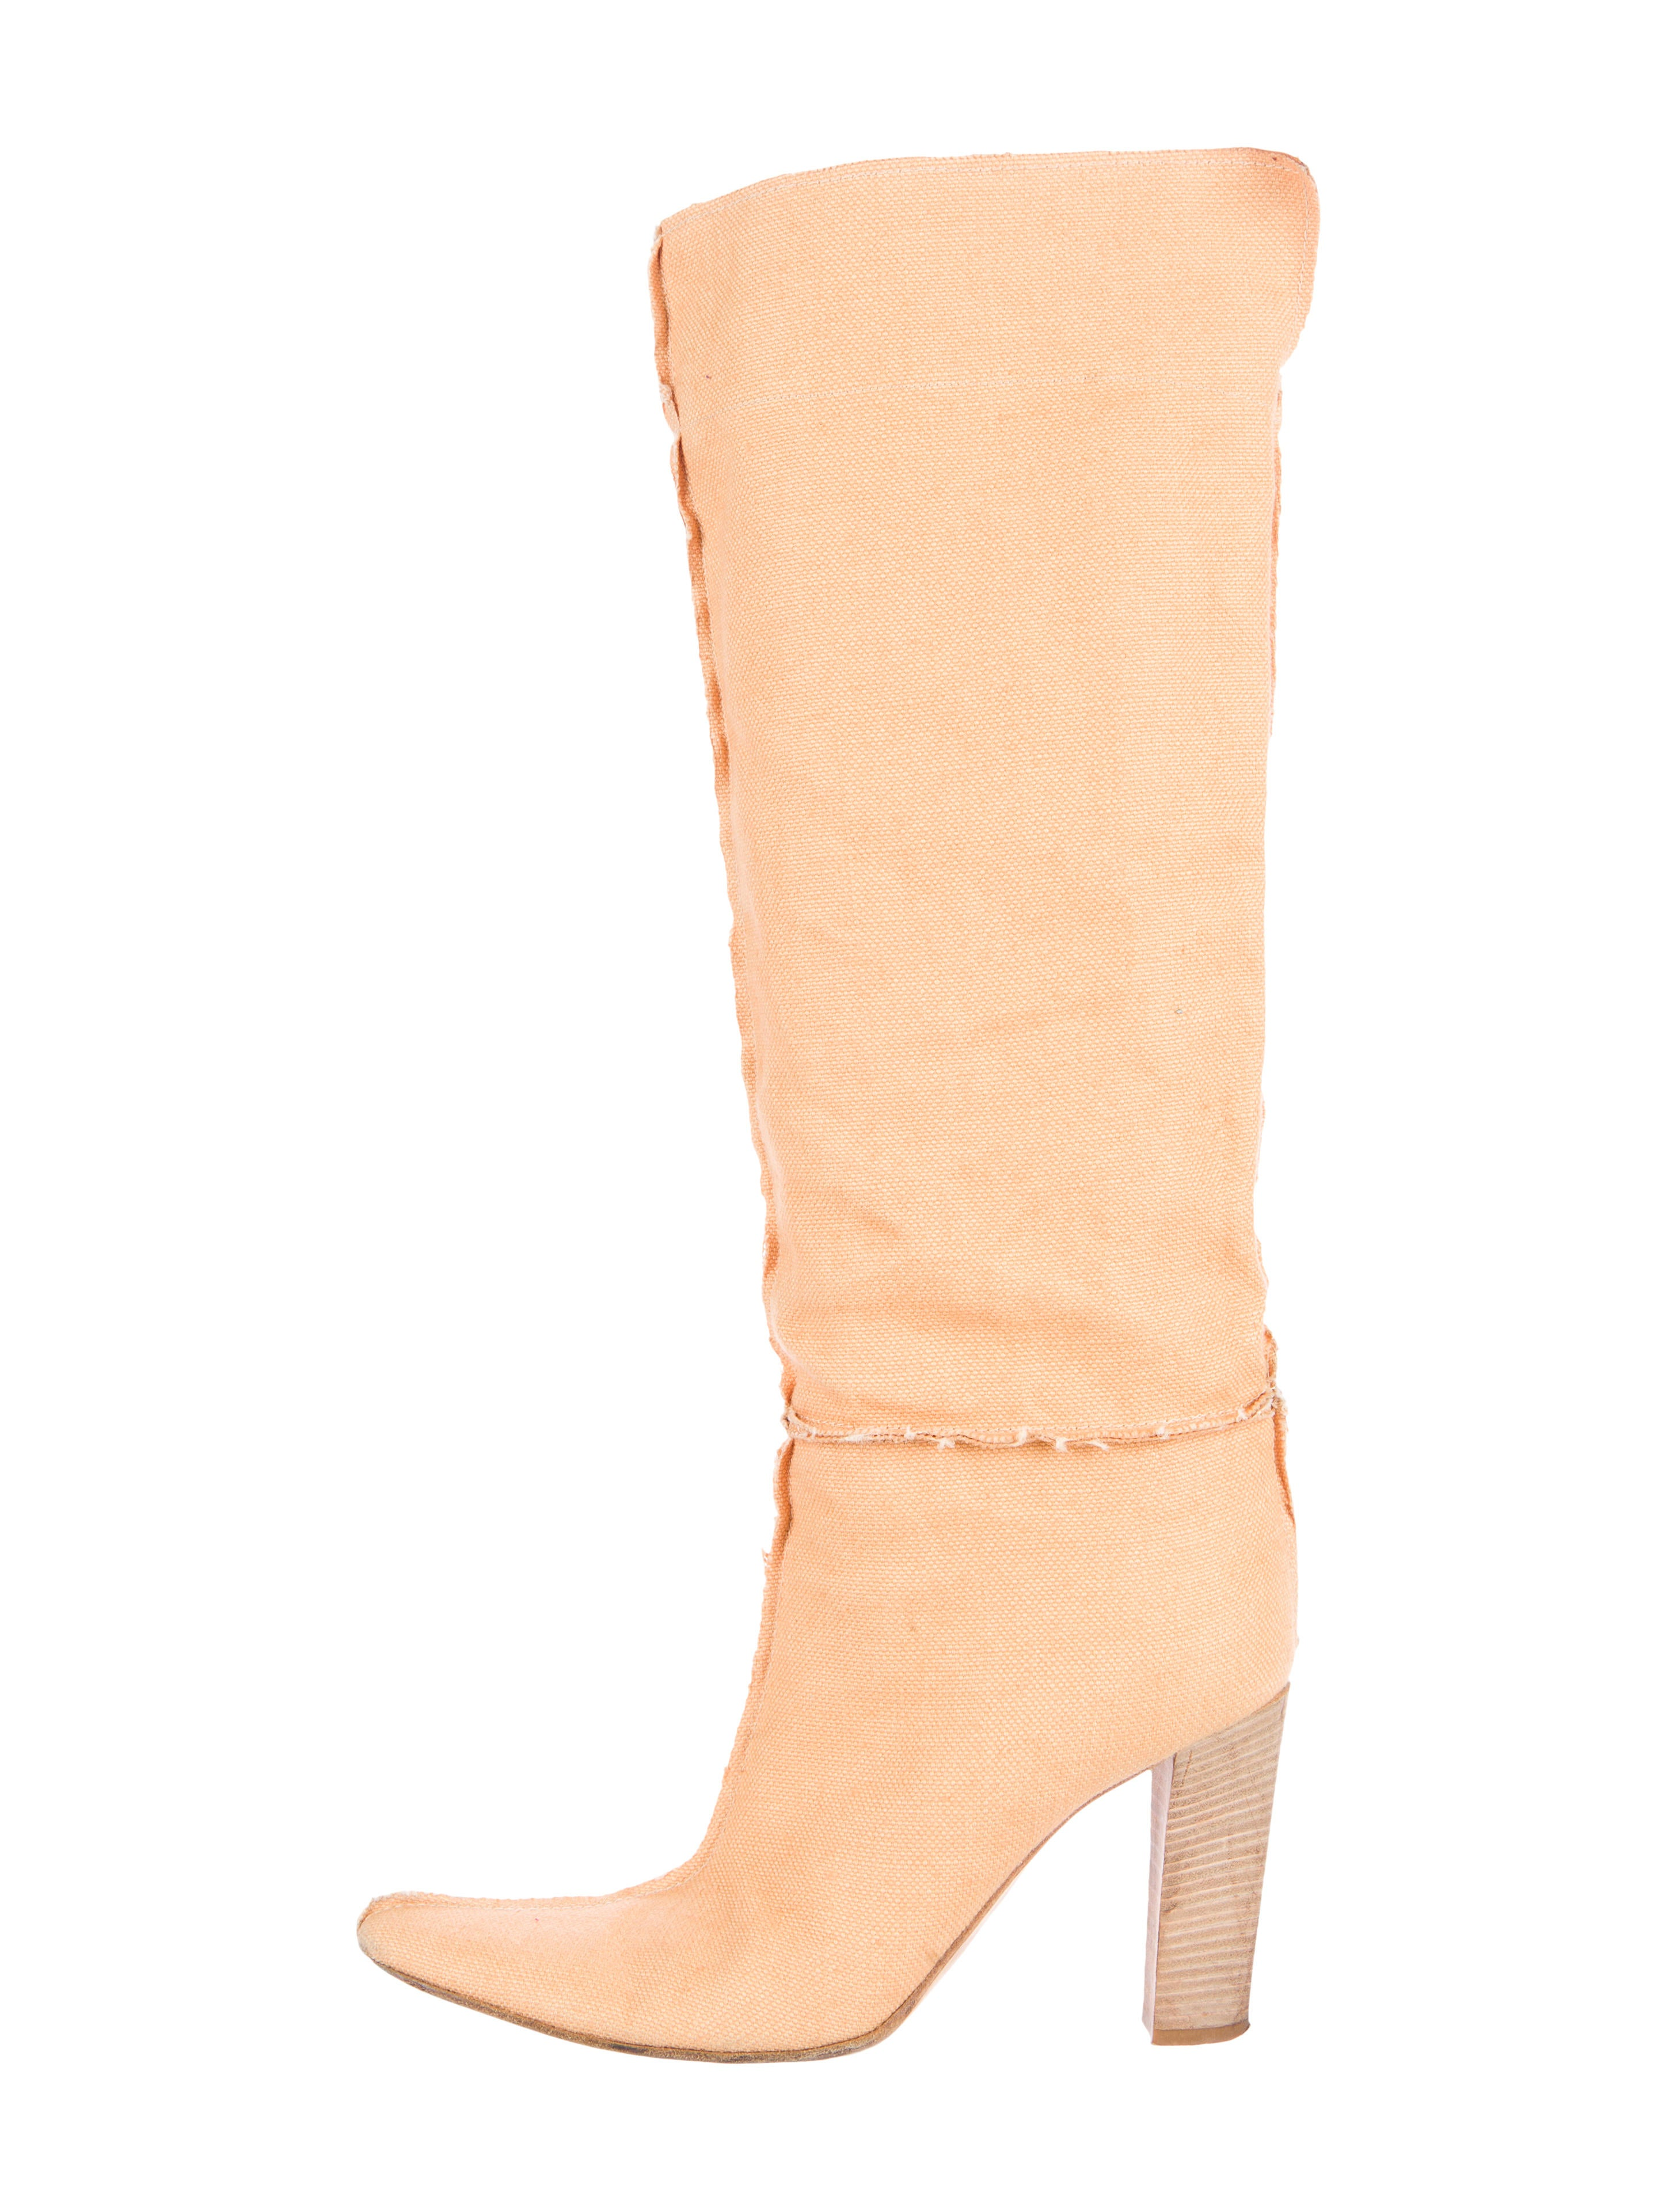 Bottega Veneta Suede Over-The-Knee Boots sale visit s7RZ34